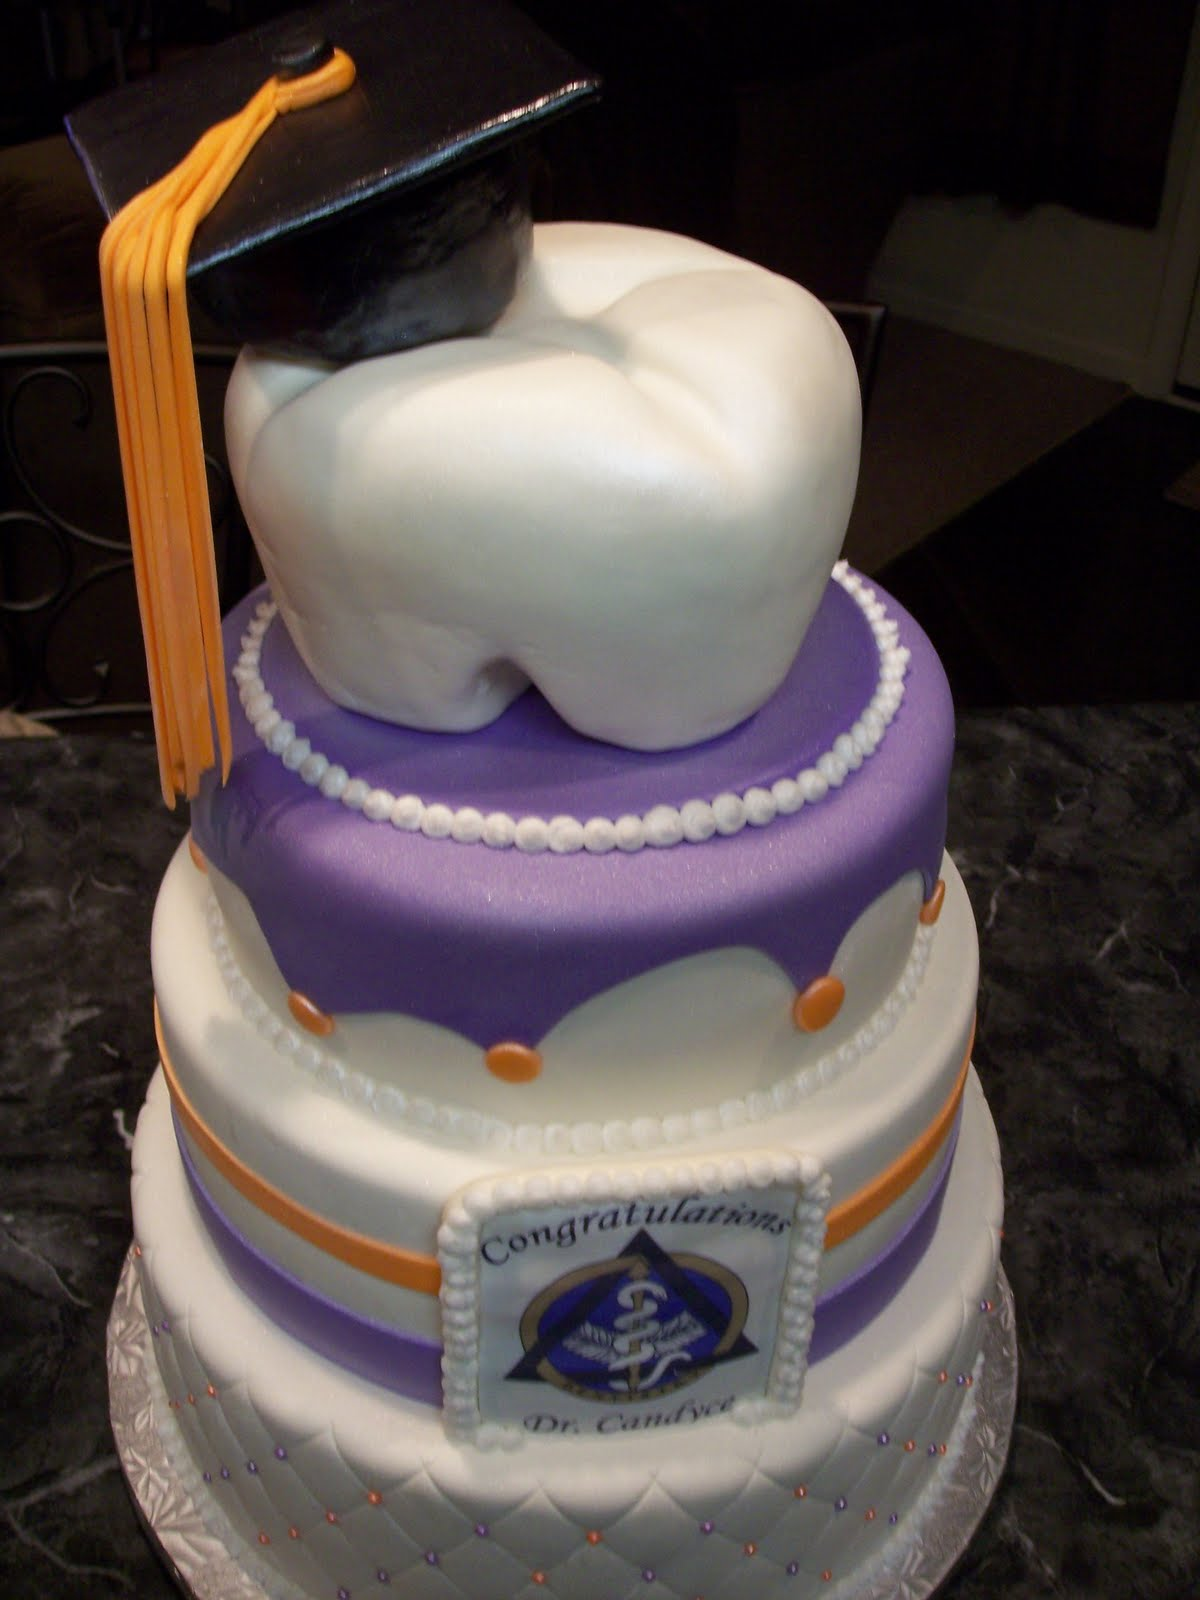 11 Photos of Dentist Graduation Cakes